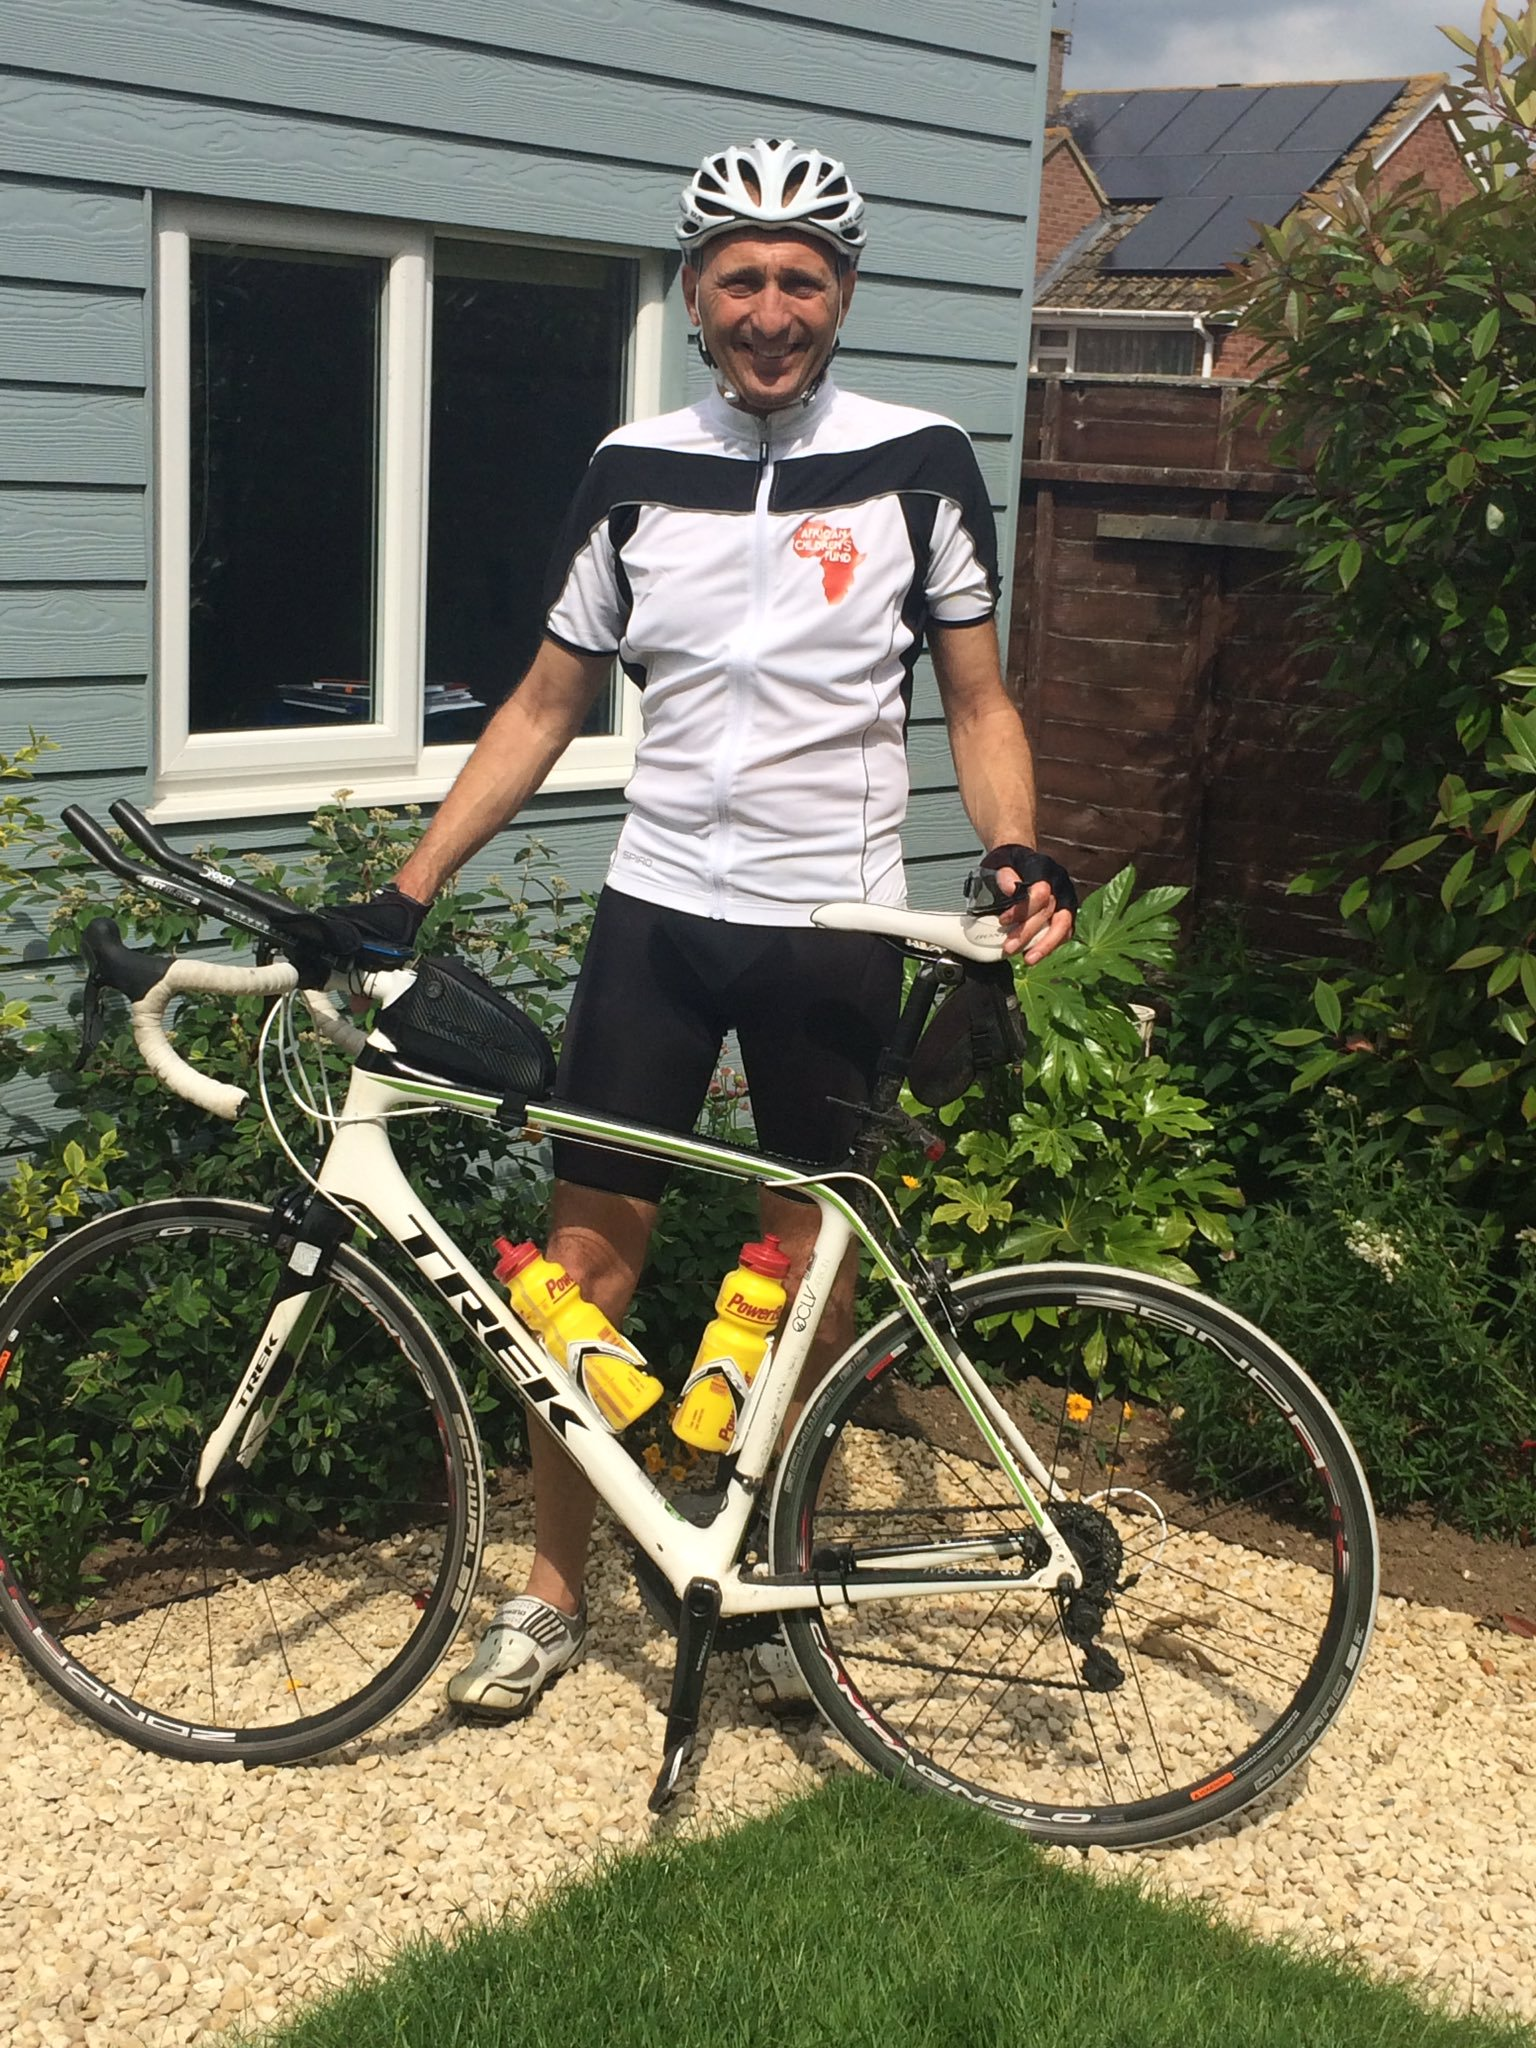 Steve, standing in a sunny garden wearing his white African Children's Fund cycling jersey while holding his white road bike.